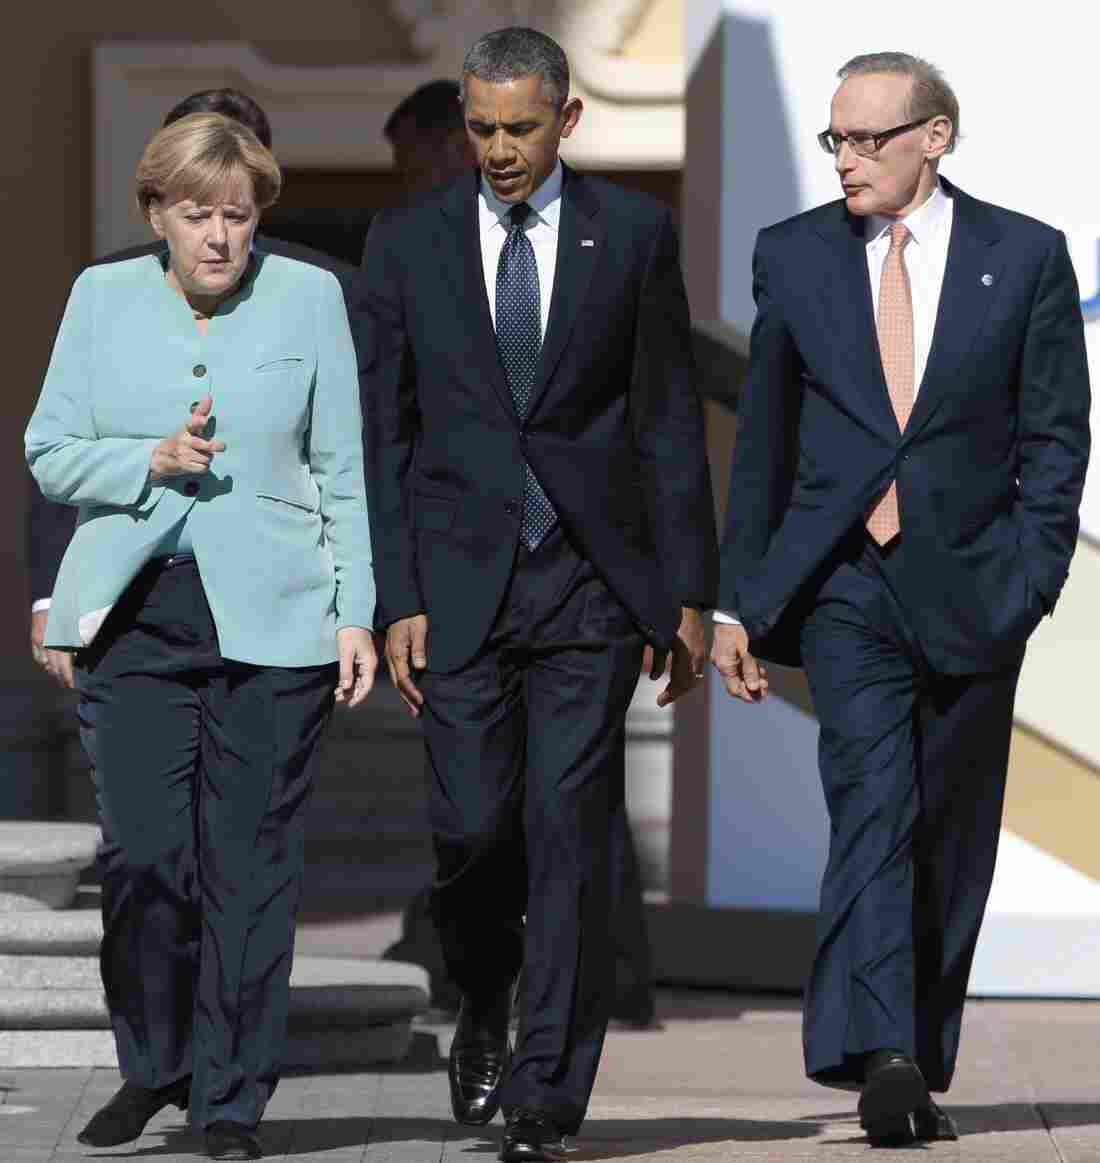 President Obama, German Chancellor Angela Merkel and Australian Foreign Minister Bob Carr in Russia in September in happier times before revelations that the NSA electronically eavesdropped on U.S. allies.